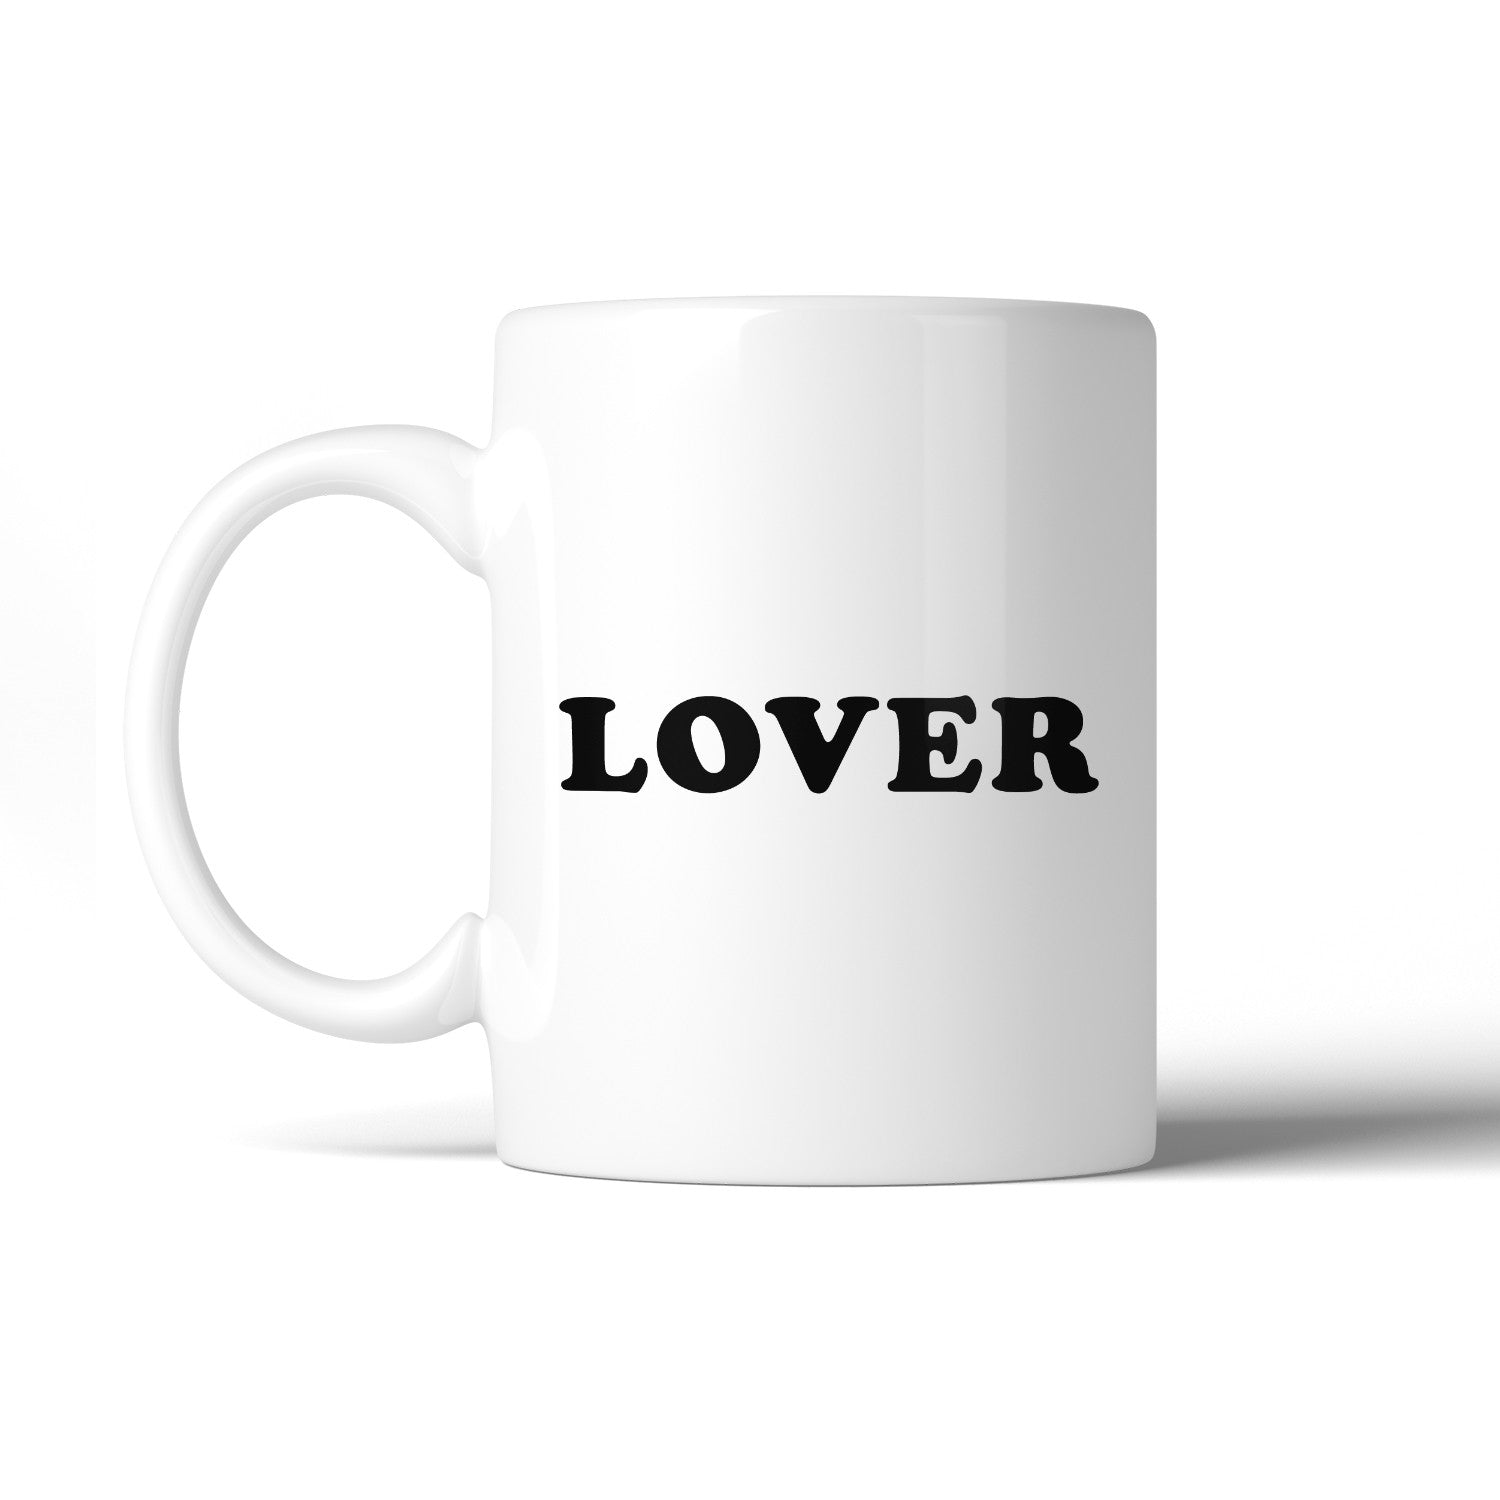 Mug Design Ideas 12 adorable diy mugs for a love gift Lover Cute Ceramic Coffee Mug Unique Design Coffee Cup Gift Ideas 365inlove